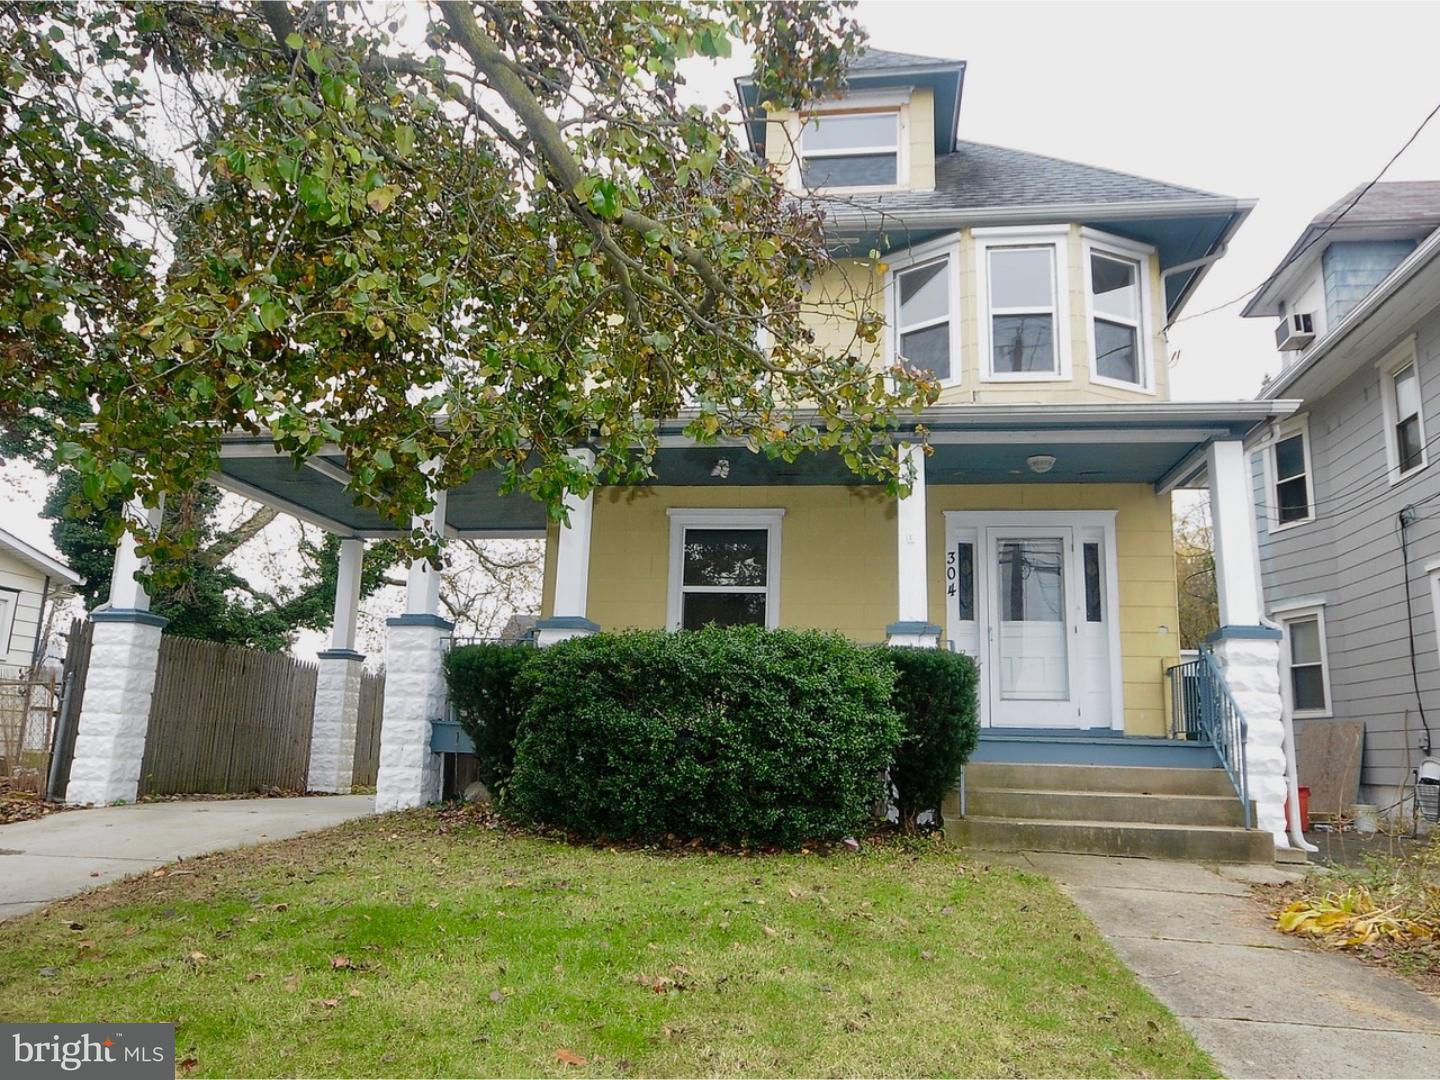 Single Family Home for Sale at 304 BARRINGTON Avenue Barrington, New Jersey 08007 United States